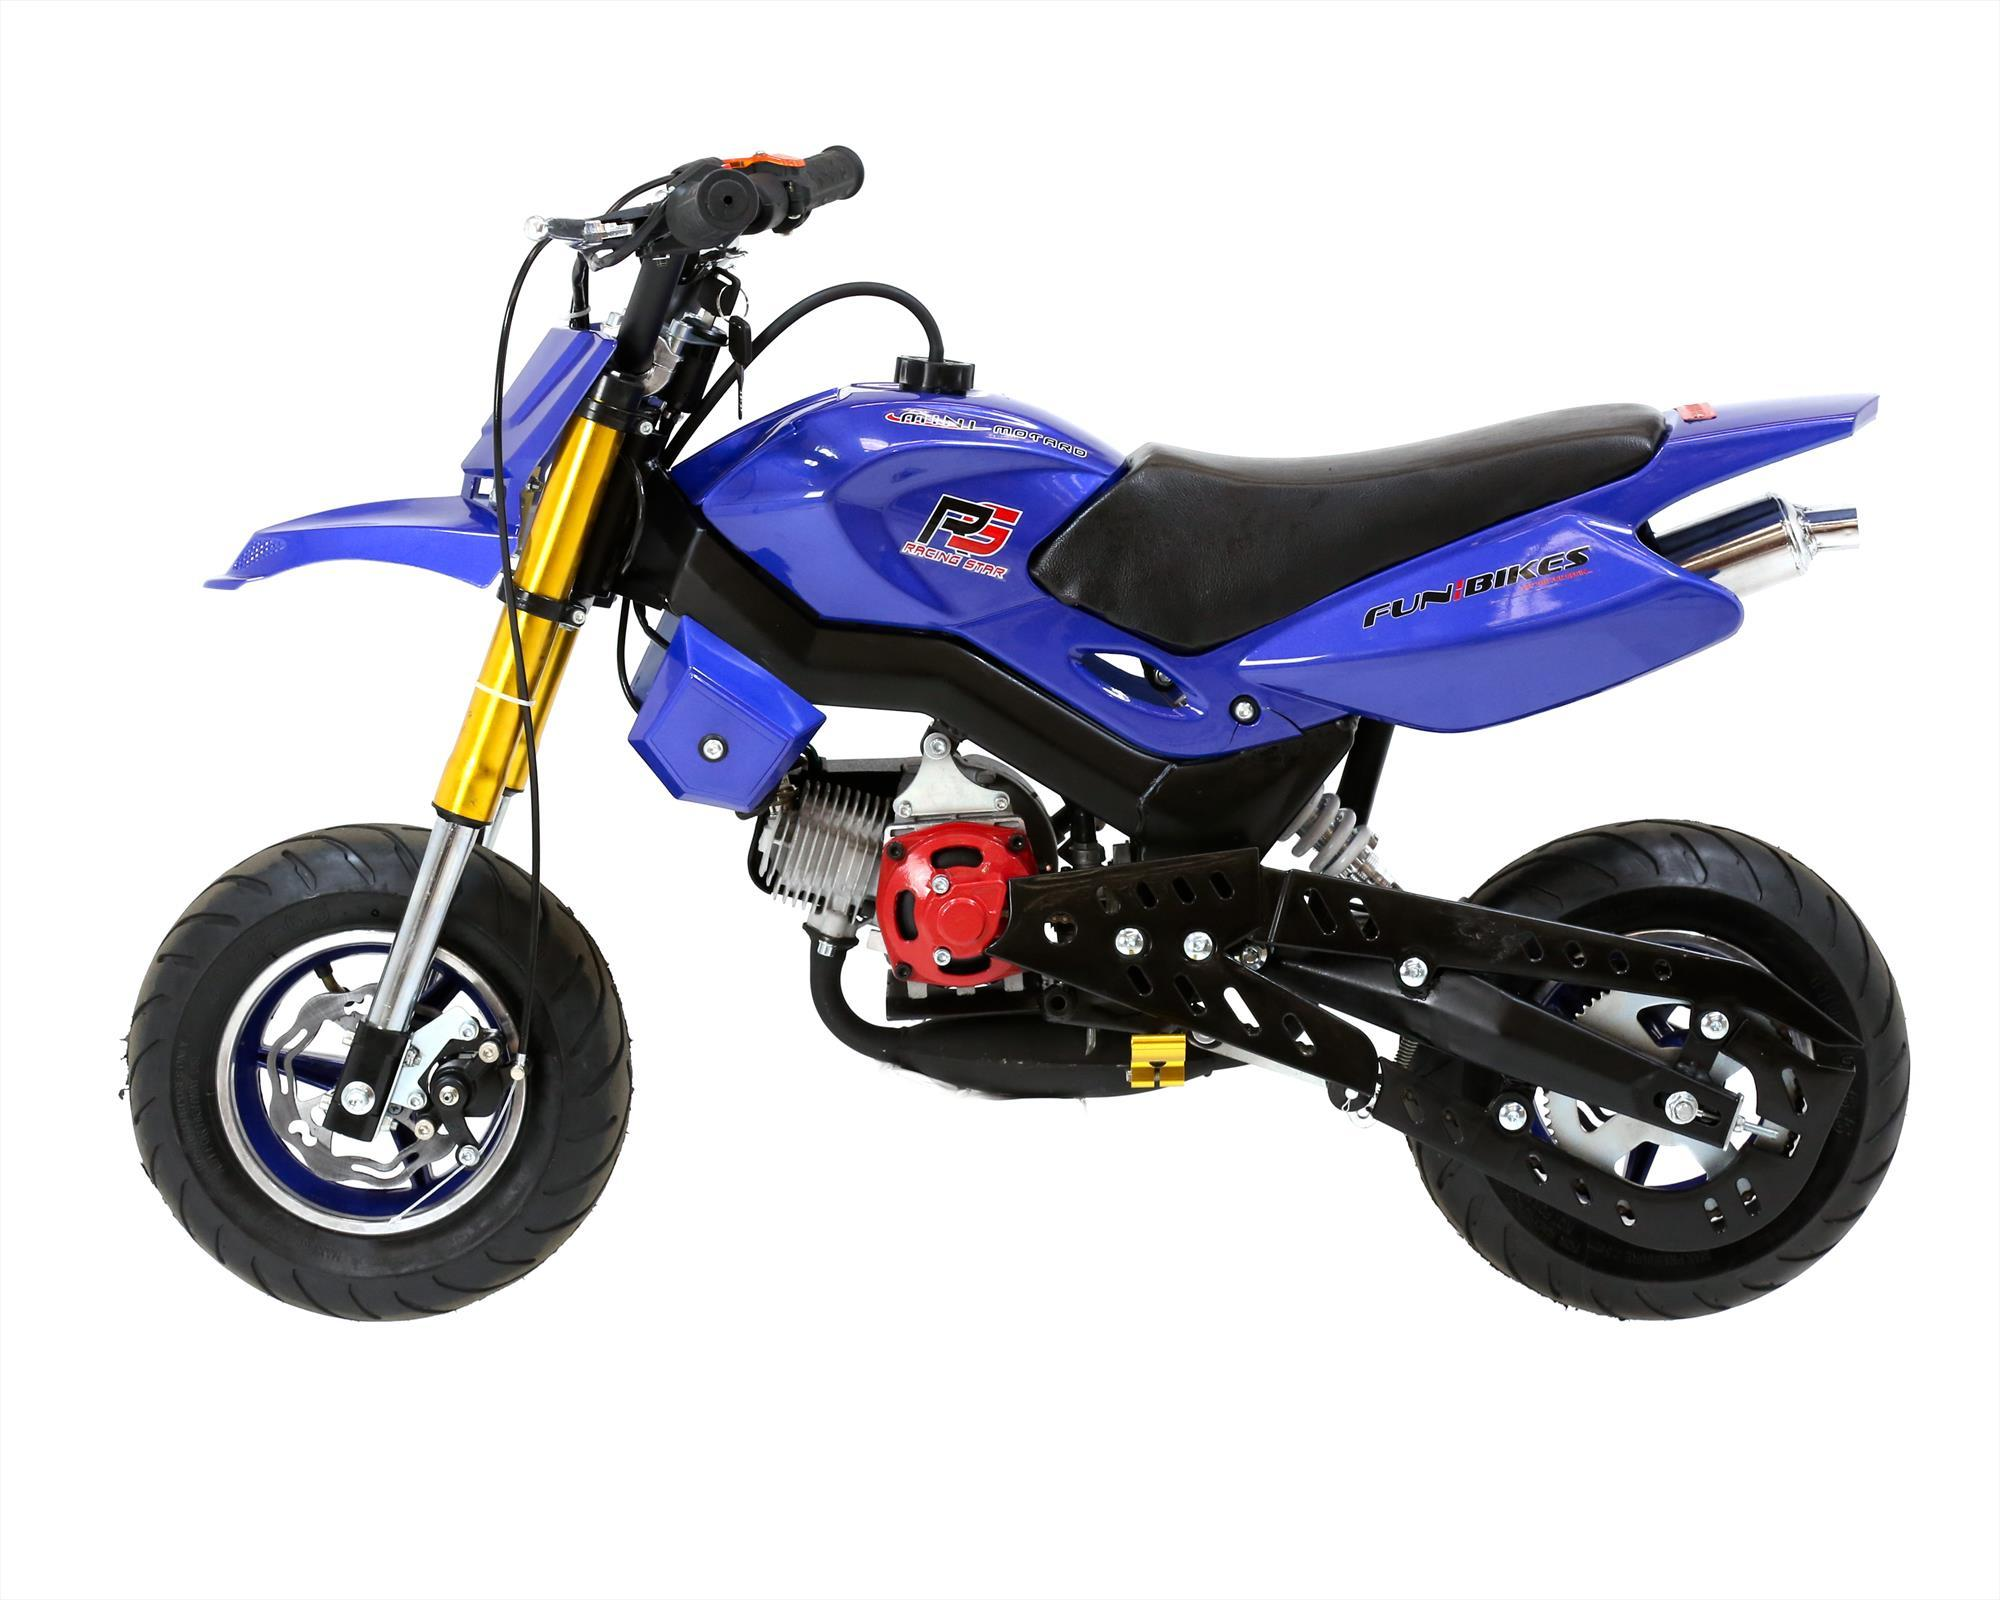 funbikes super motard 50cc 48cm petrol blue mini moto bike. Black Bedroom Furniture Sets. Home Design Ideas